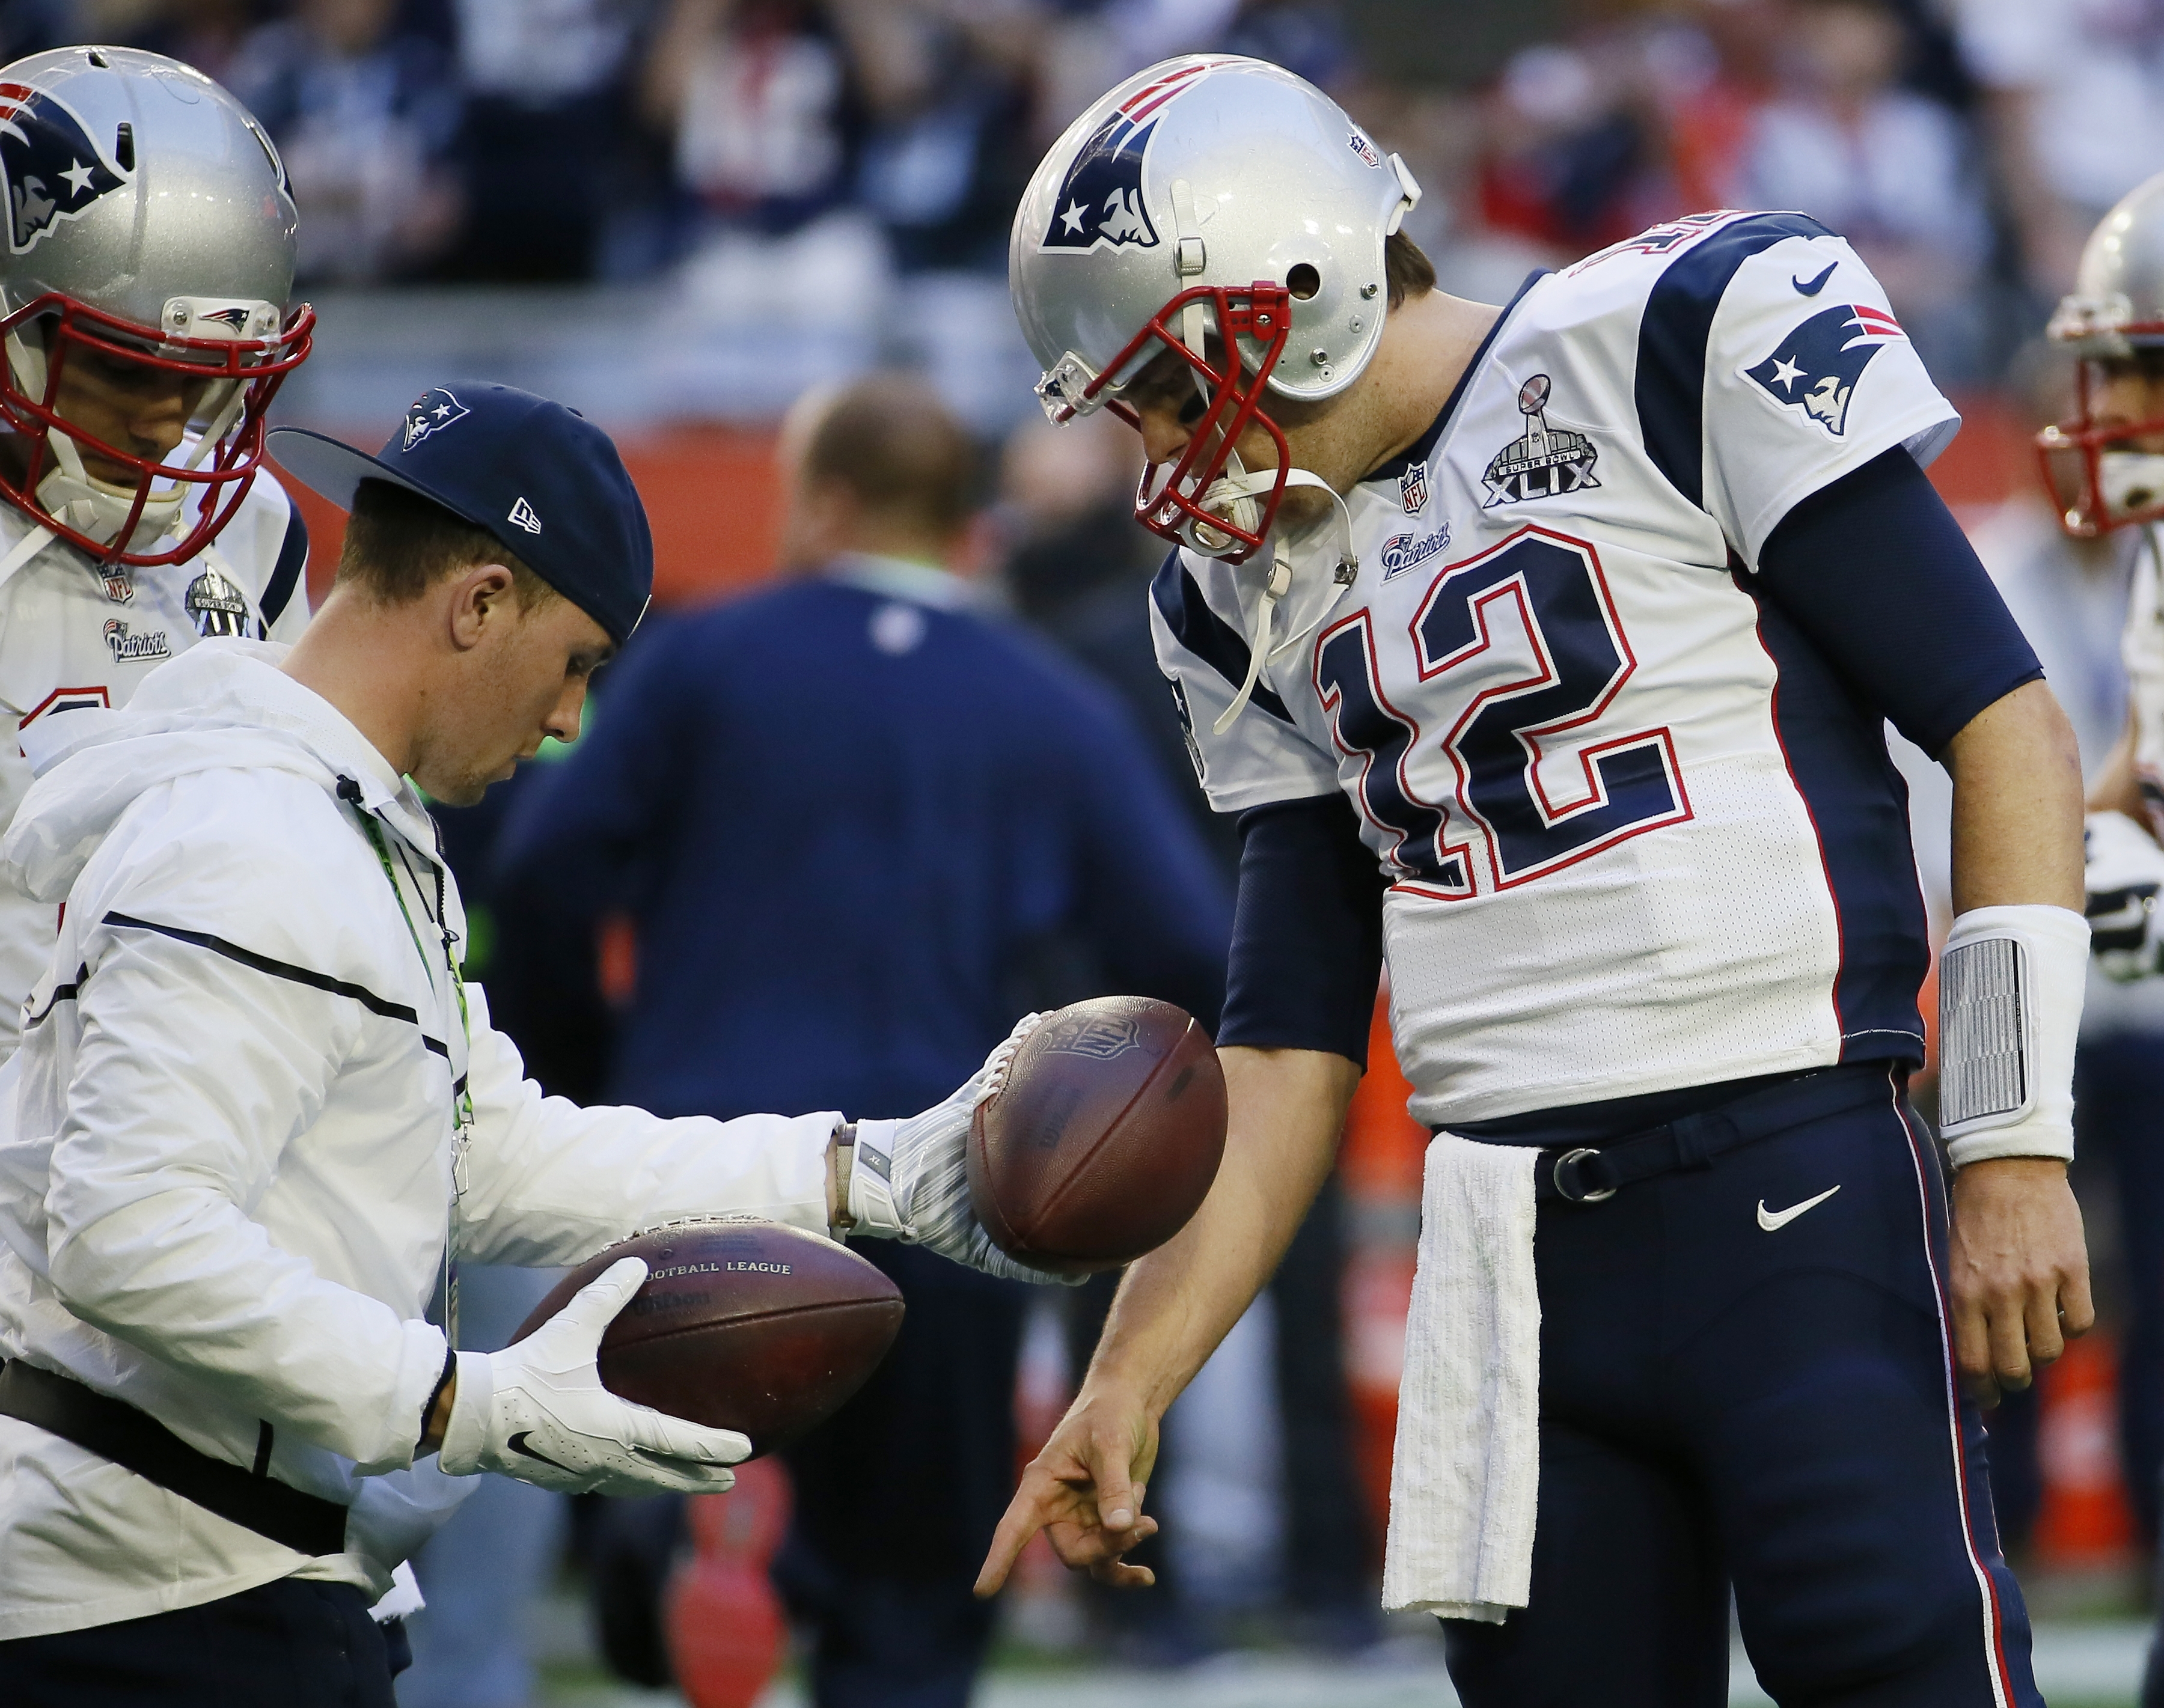 FILE - In this Feb. 1, 2015, file photo, New England Patriots quarterback Tom Brady (12) warms up before the NFL Super Bowl XLIX football game against the Seattle Seahawks in Glendale, Ariz. Tom Brady is expected to file an appeal of his four-game suspens